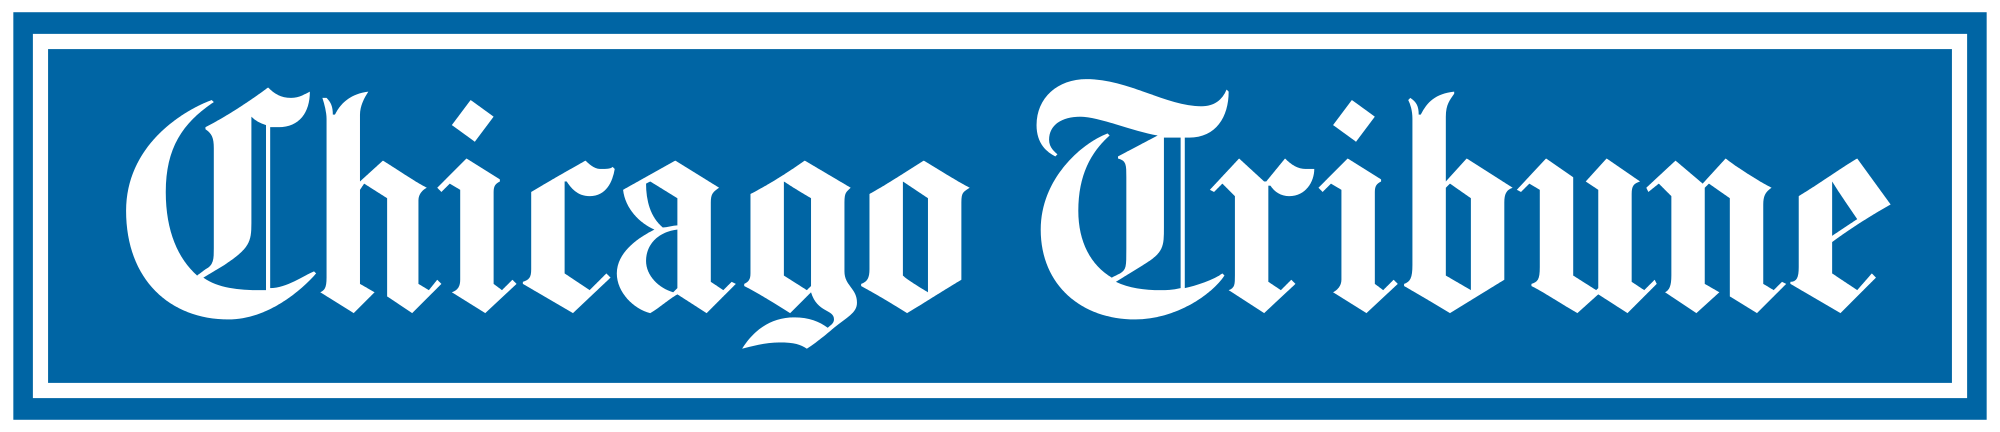 Chicago tribune png. File logo svg wikimedia